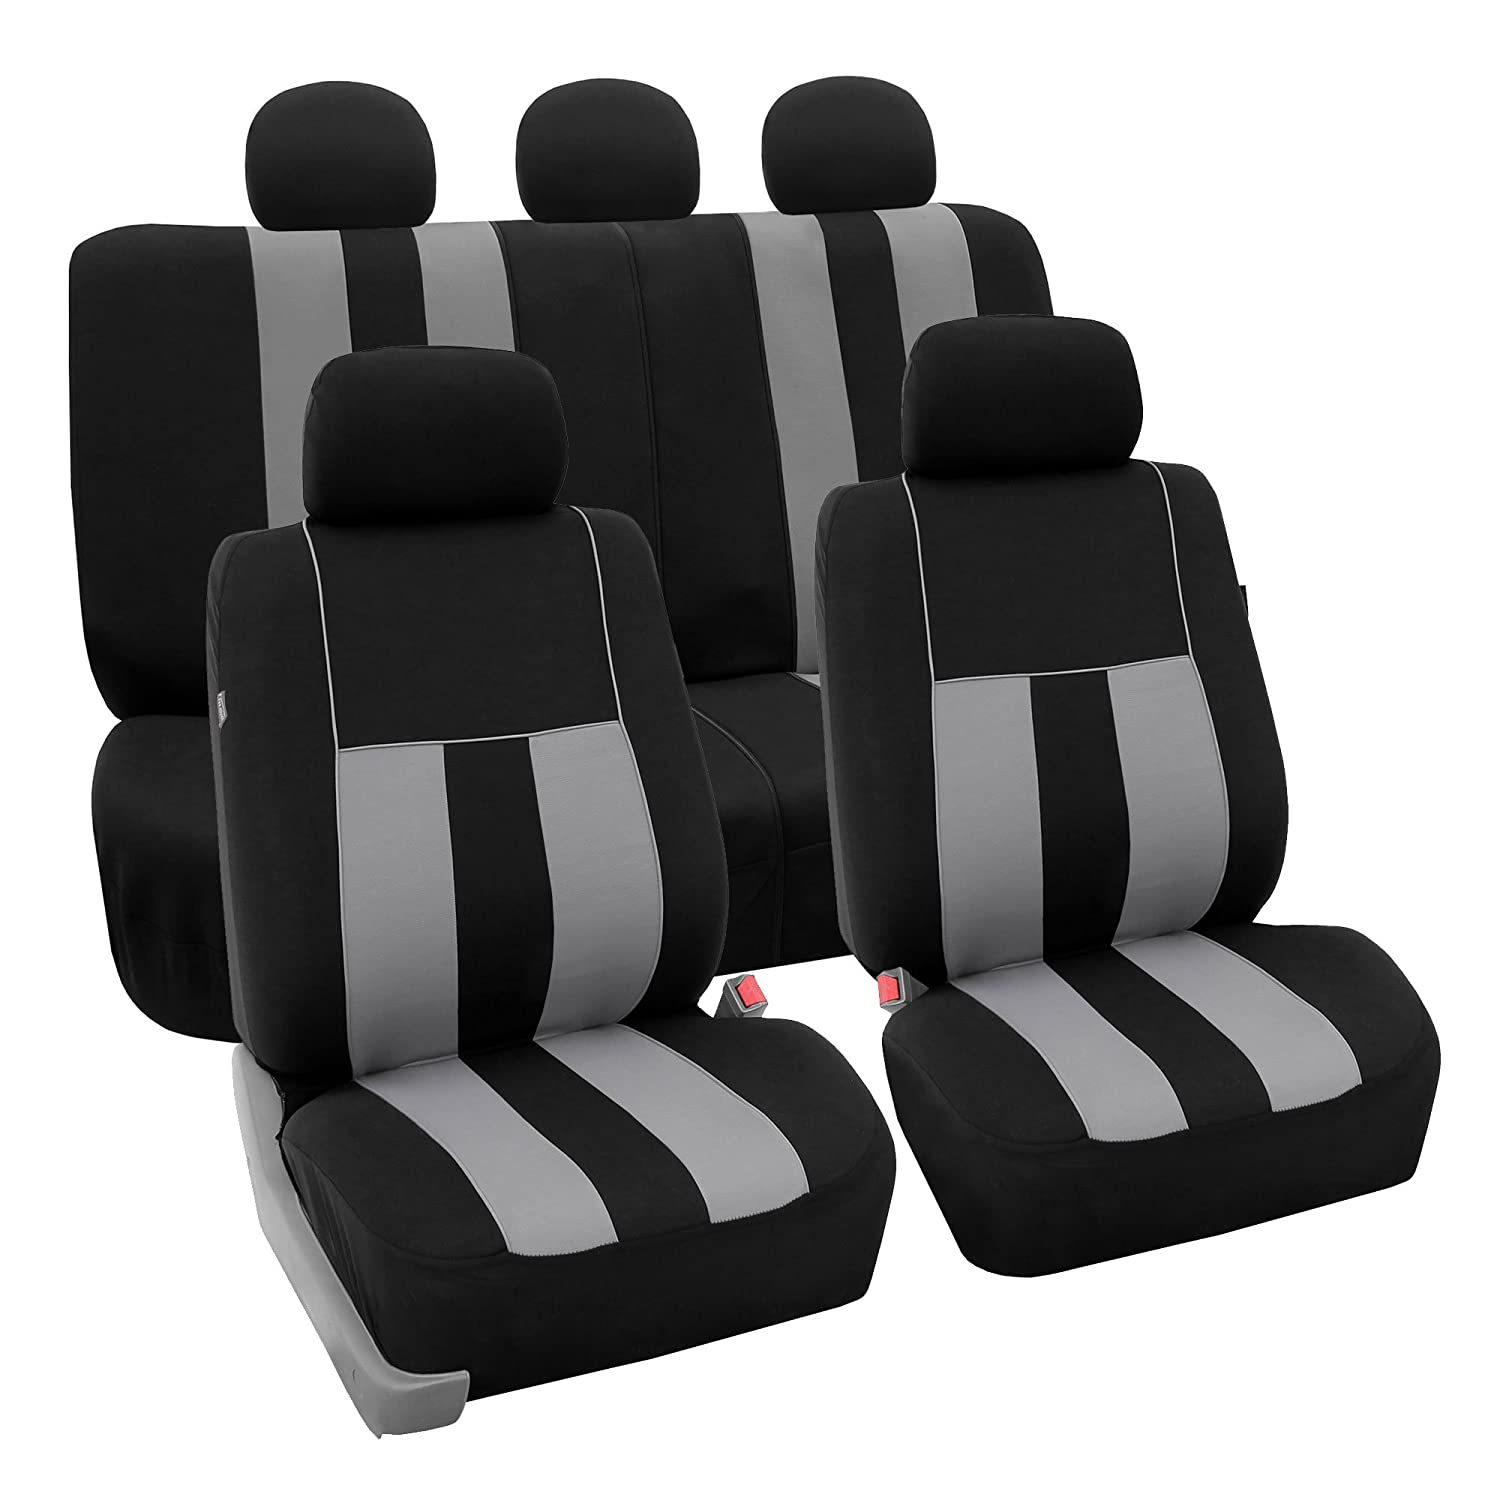 FH Group FB030115-SEAT Light & Breezy Burgundy/Black Cloth Seat Cover Set Airbag & Split Ready- Fit Most Car, Truck, SUV, or Van